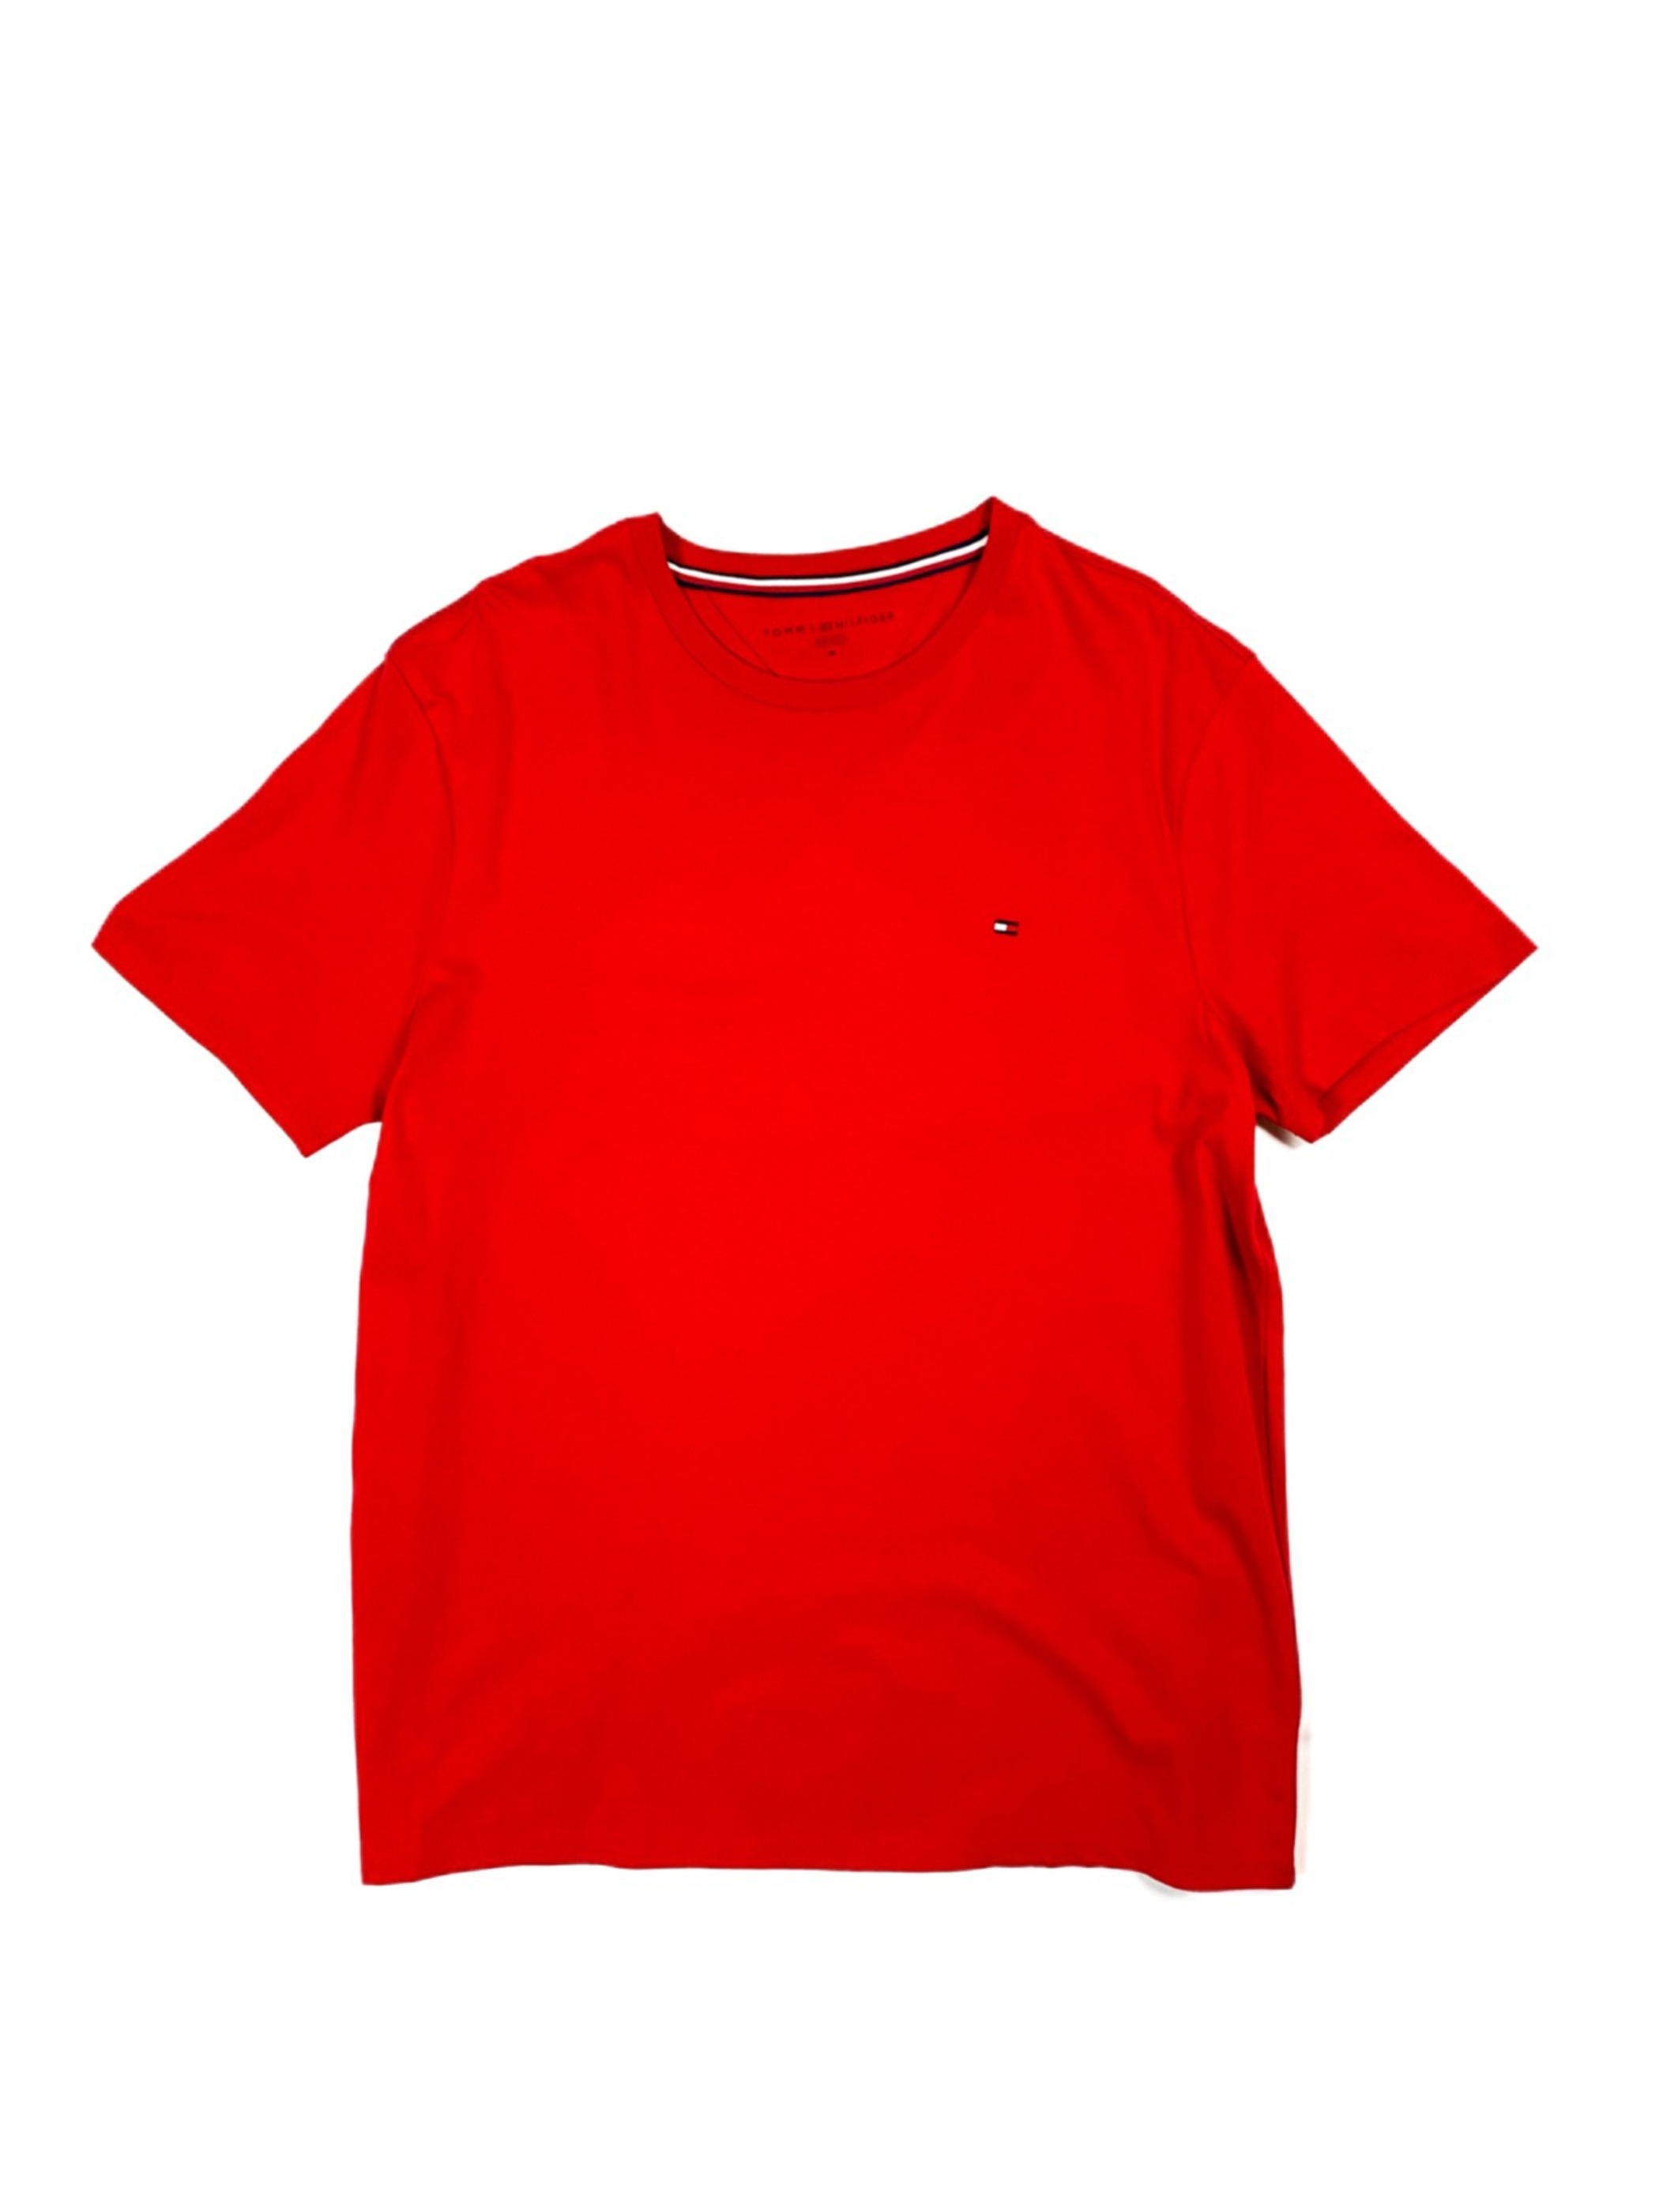 TOMMY HILFIGER one point tee(red)